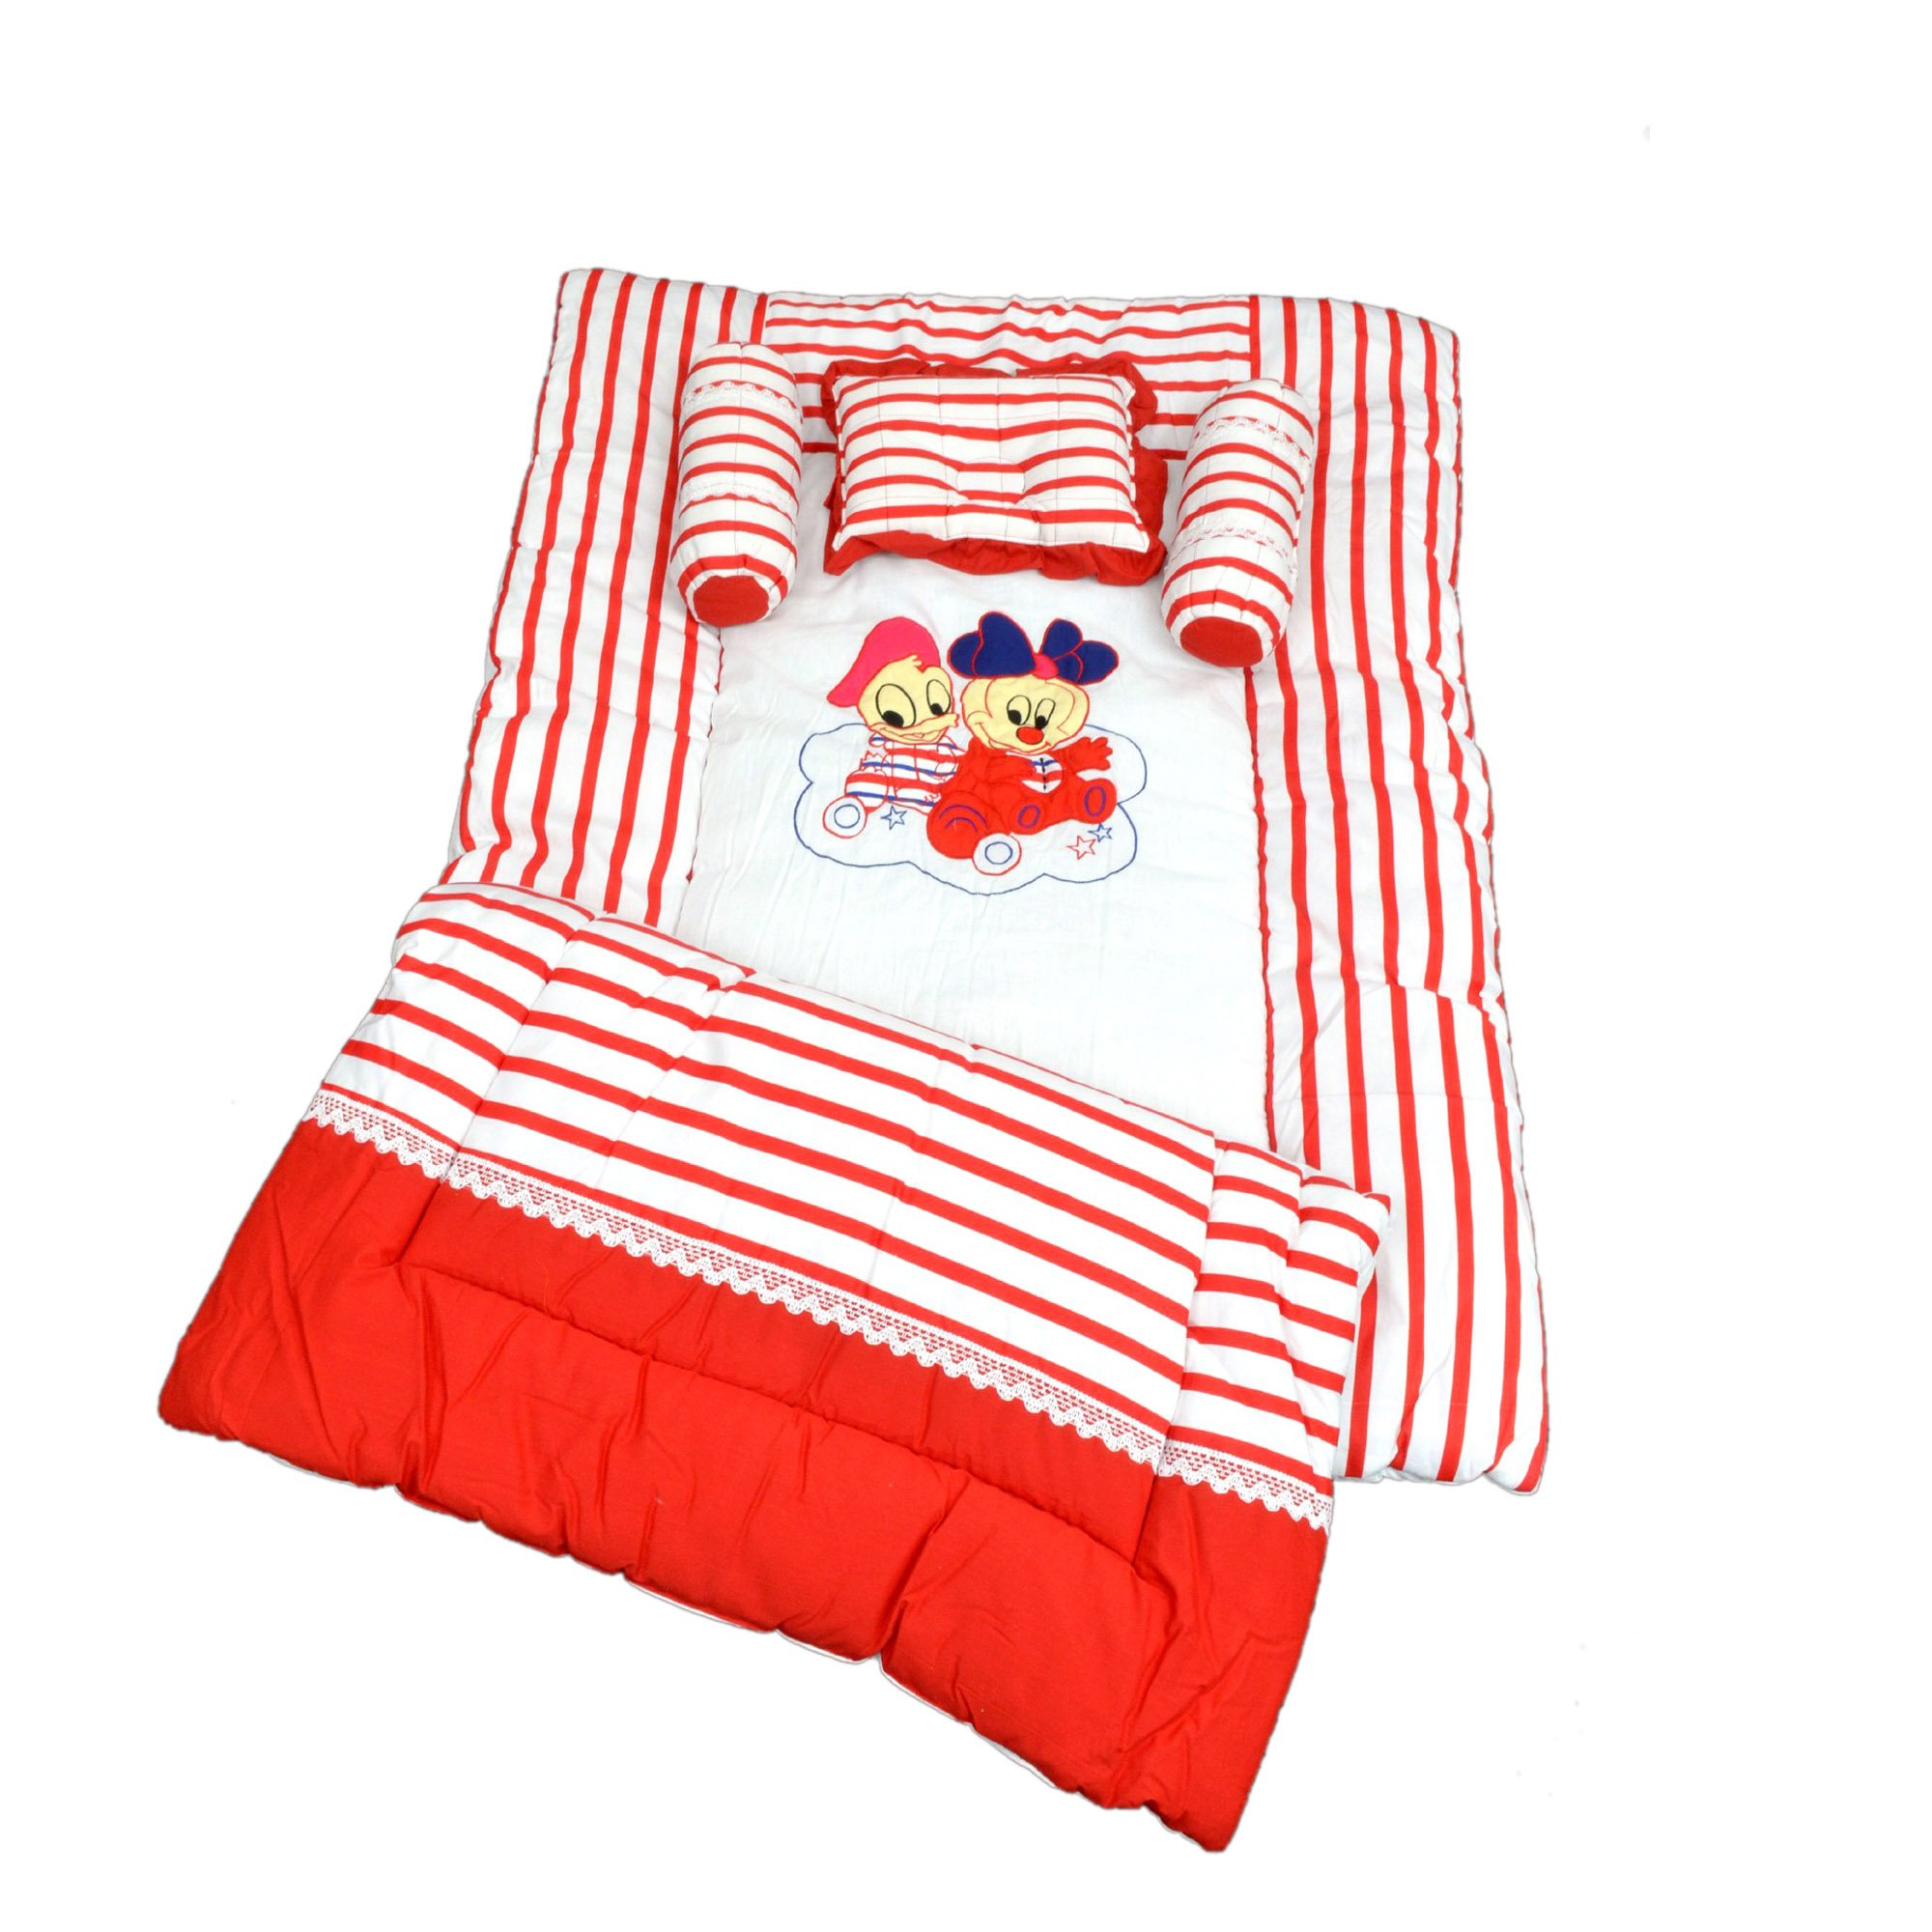 Maple Krafts Pure Cotton Baby Bedding set upto 24 months Red with Pillow